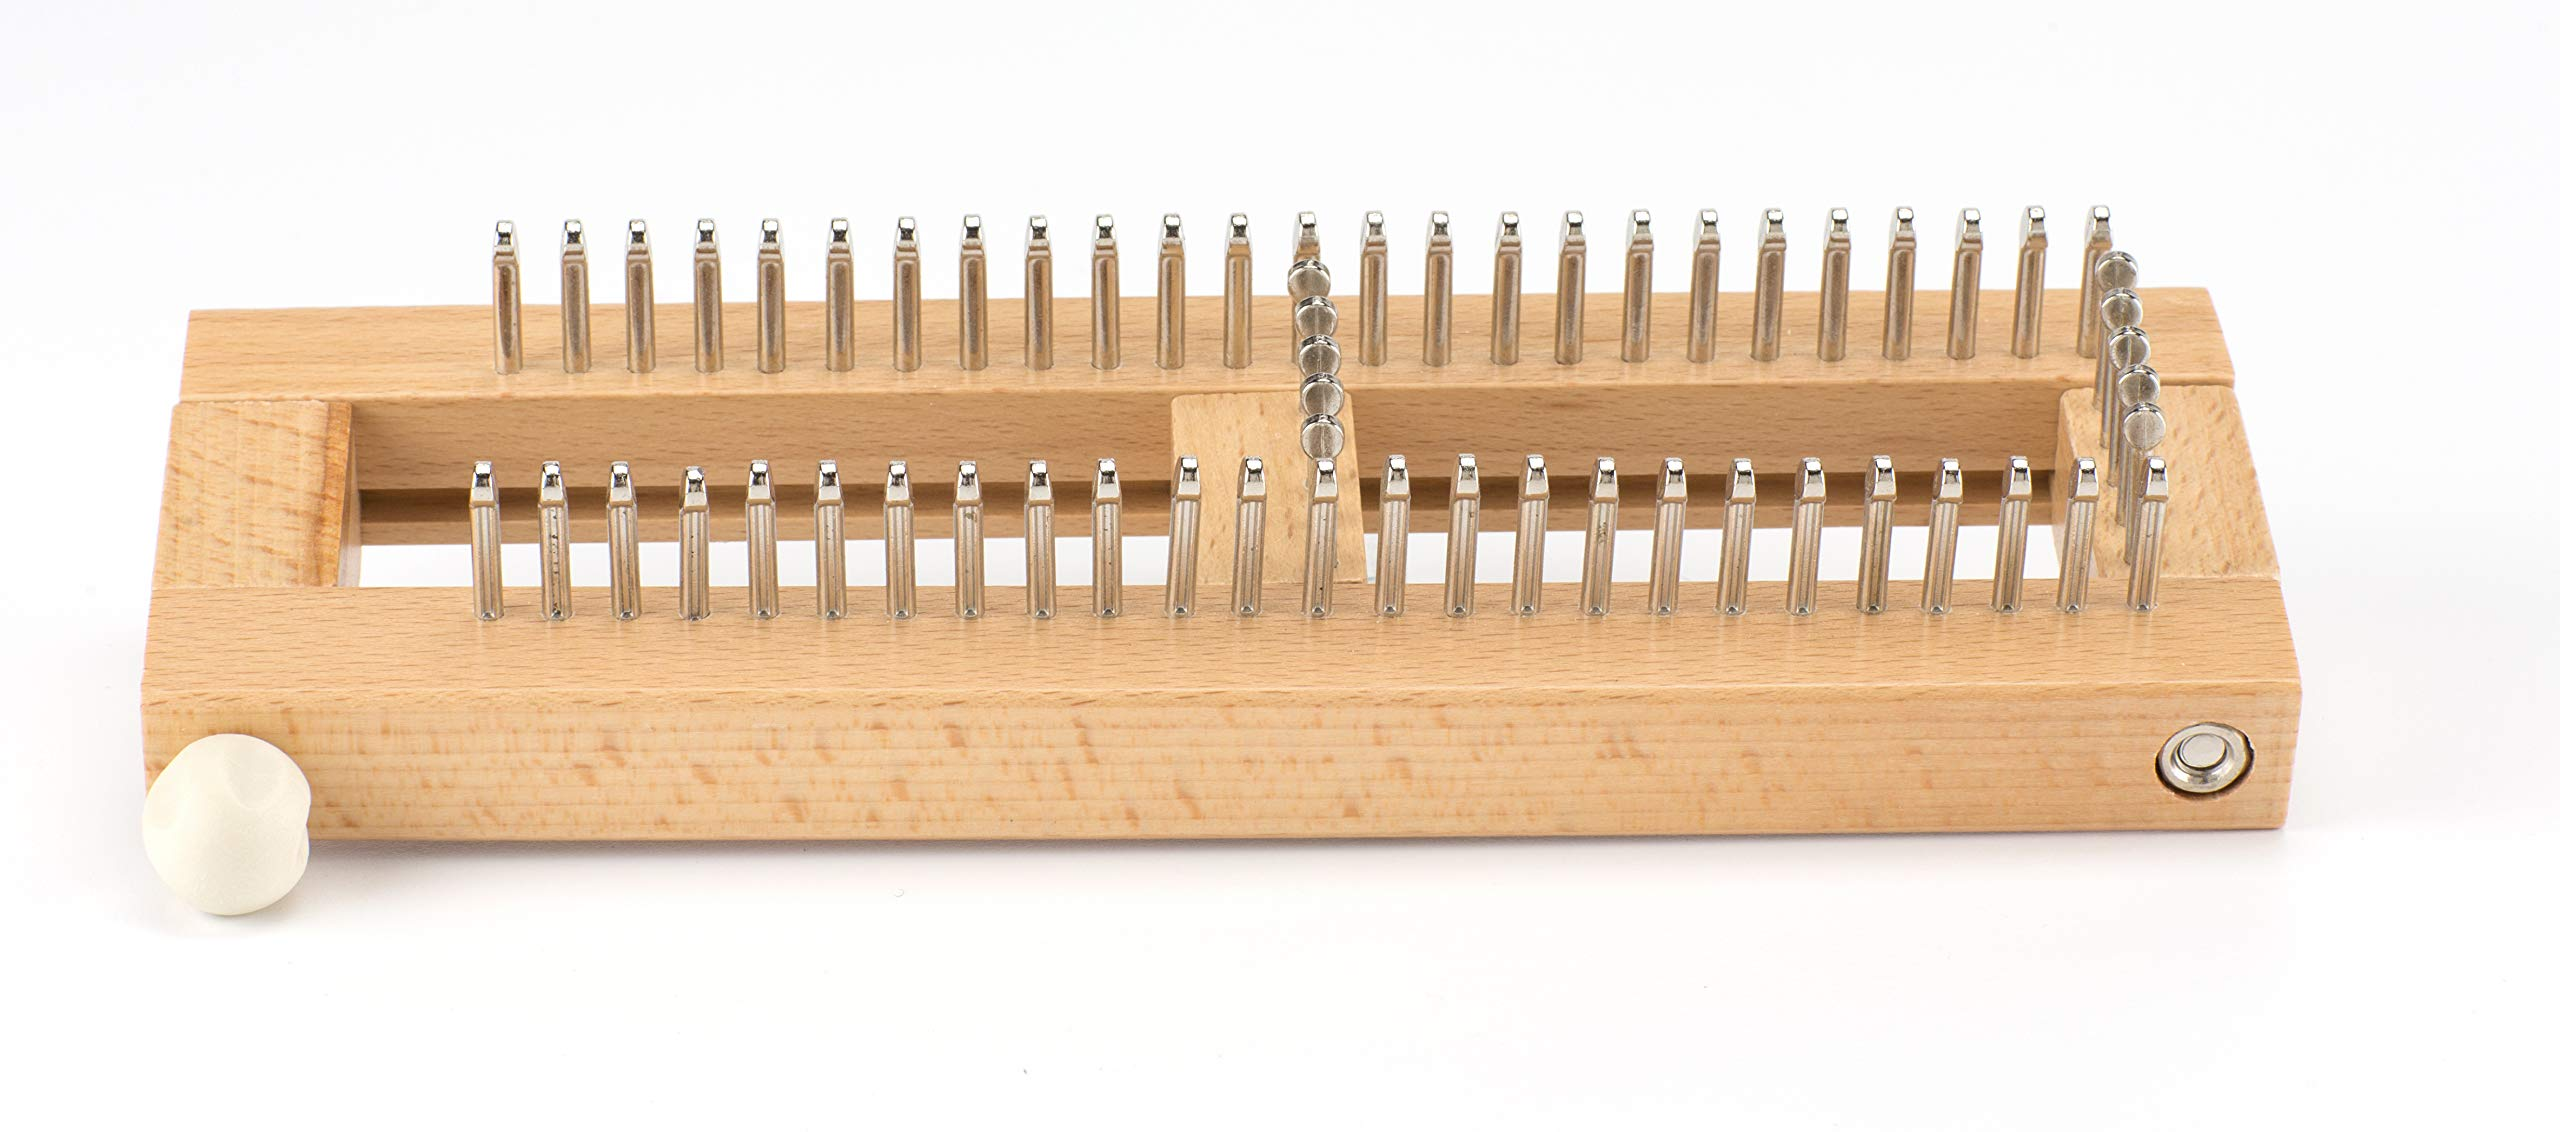 Authentic Knitting 9''x3'' Sock Loom Knitting Board W/DVD- by Authentic Knitting Board (Image #3)